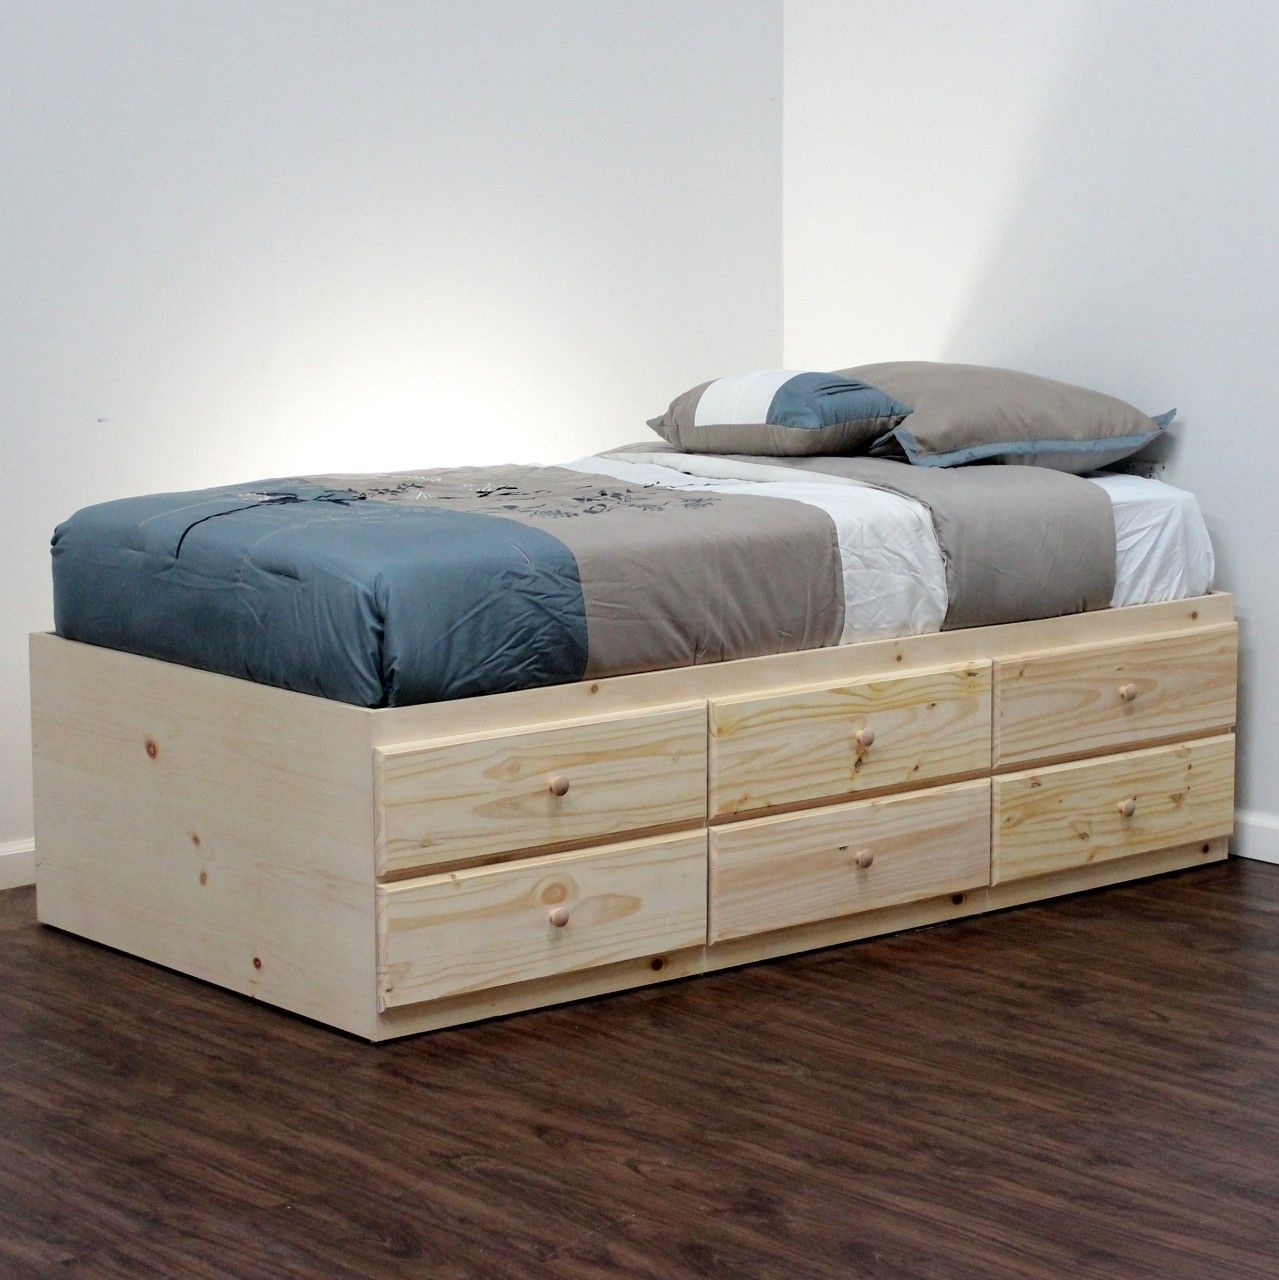 design rustic for twin frames bedroom perfect bed frame unique affordable